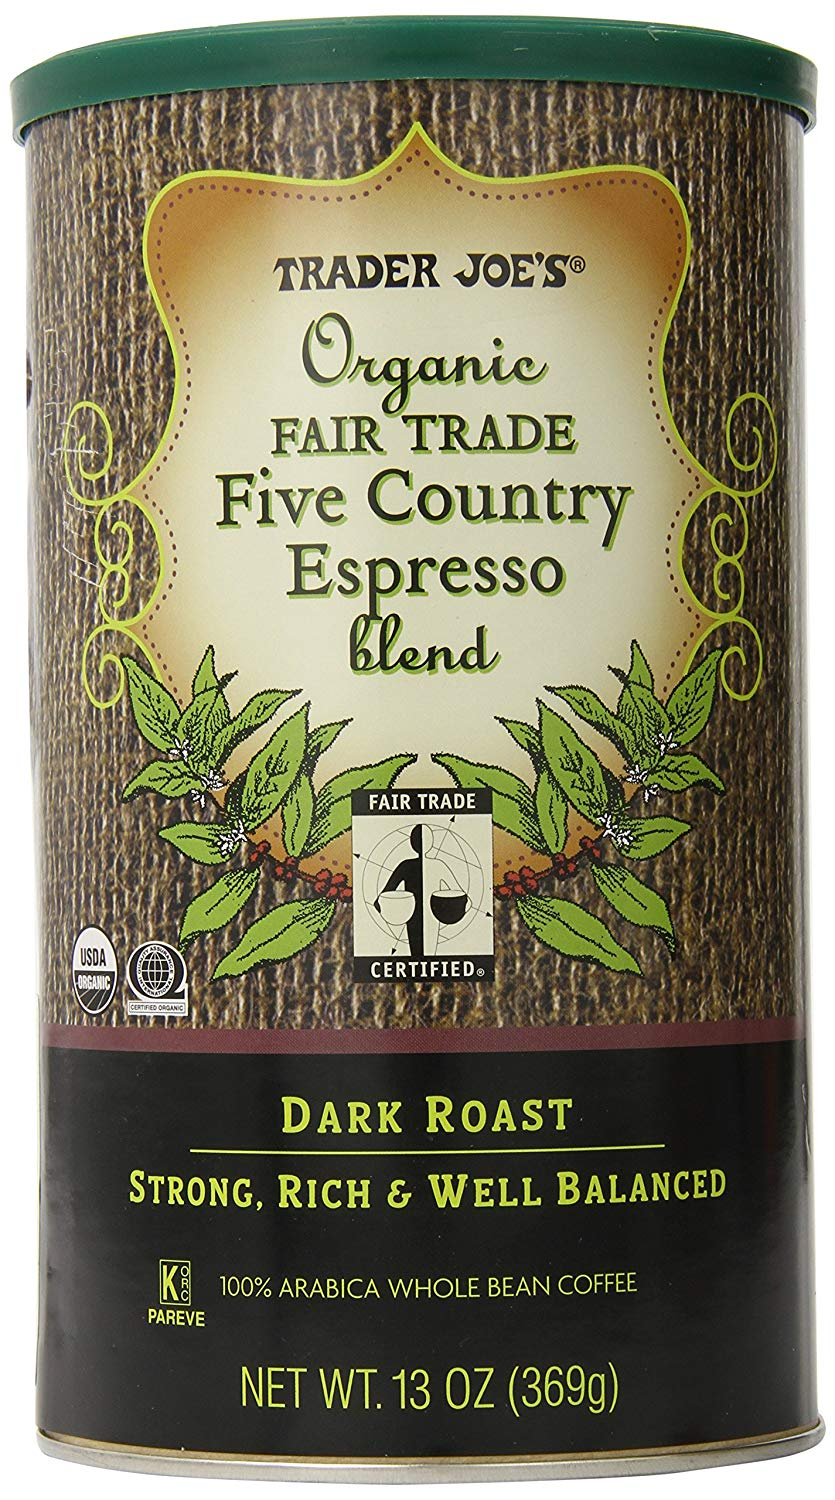 TRADER JOES Organic Fair Trade Five Country Espresso Blend 100% Arabica Roasted Whole Bean Coffee, 13 Ounce